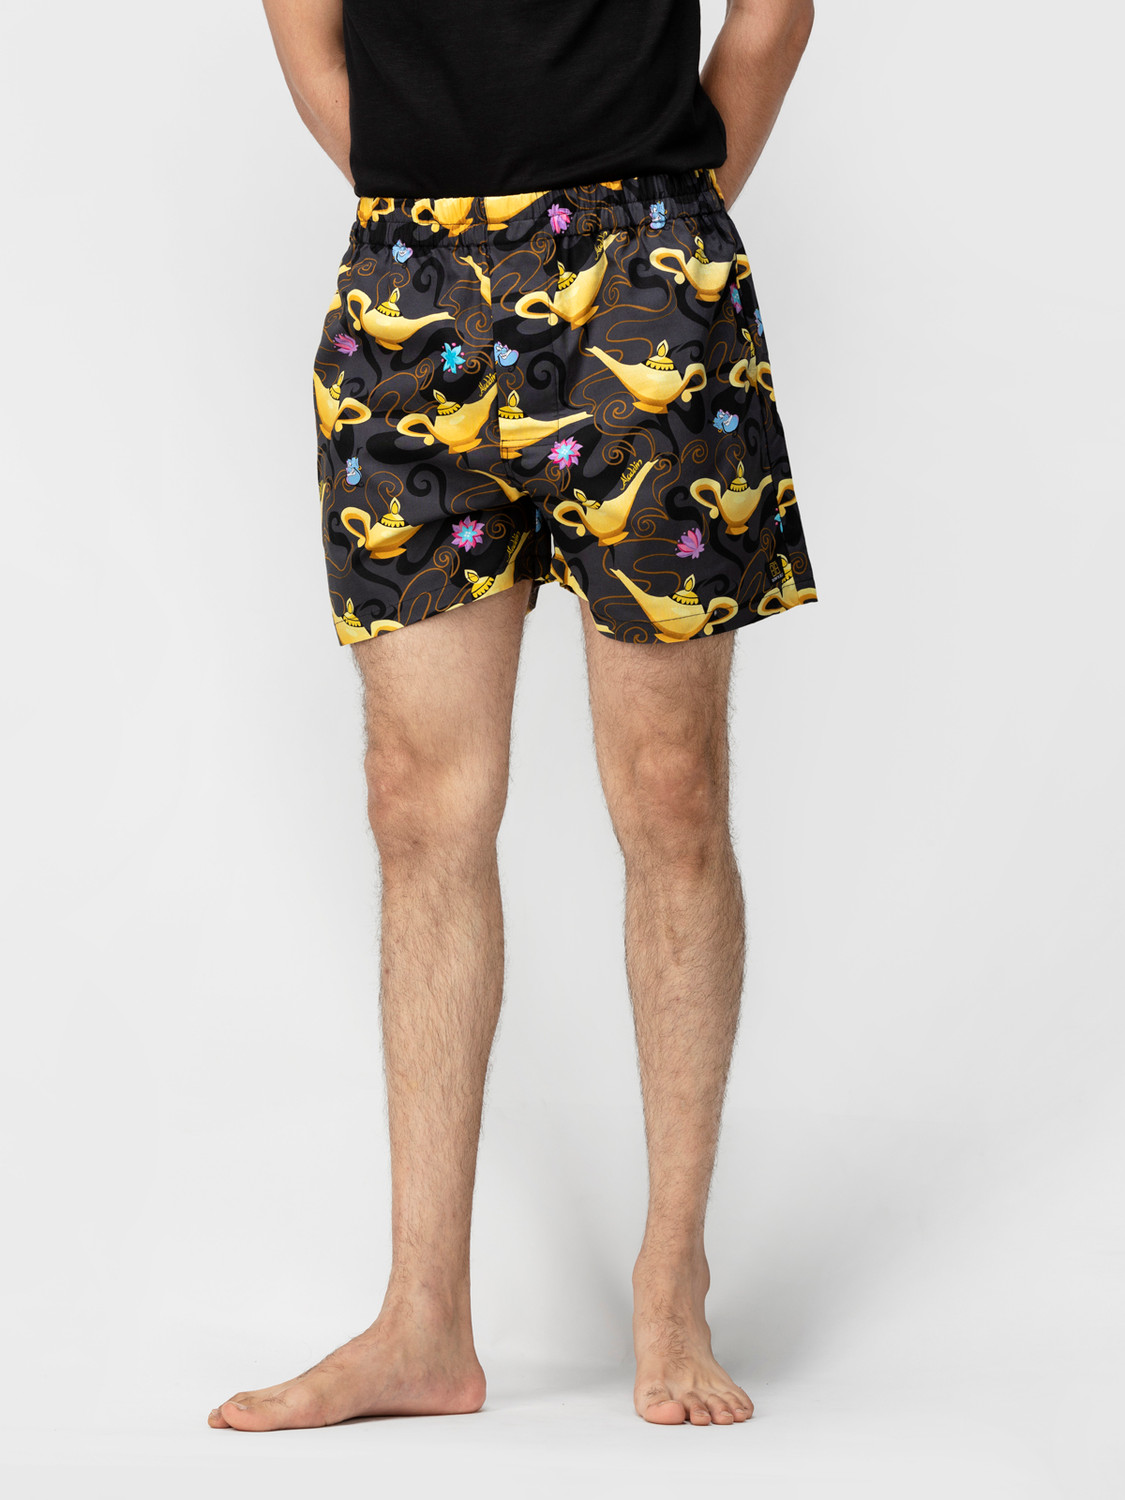 Your Wish is My Command Men's Cotton Boxers